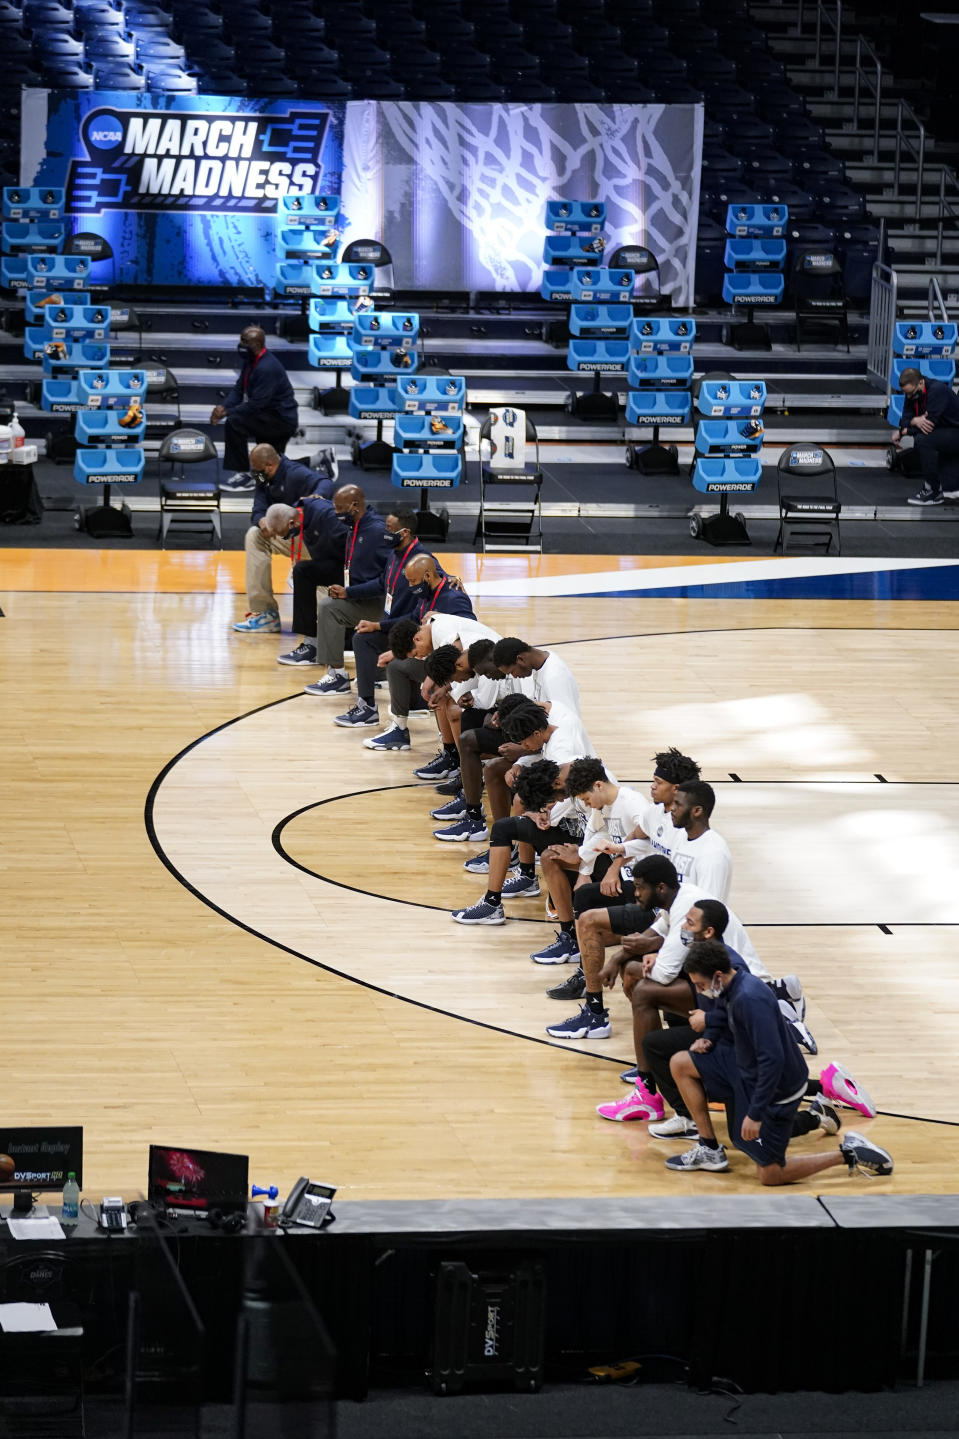 Members of the Georgetown team take a knee during the National Anthem before a first-round game against Colorado in the NCAA men's college basketball tournament at Hinkle Fieldhouse in Indianapolis, Saturday, March 20, 2021. Colorado defeated Georgetown 96-73. Restrictions due to the COVID-19 pandemic have limited crowds, reduced interactions and created an abnormal NCAA experience for those involved. (AP Photo/Michael Conroy)